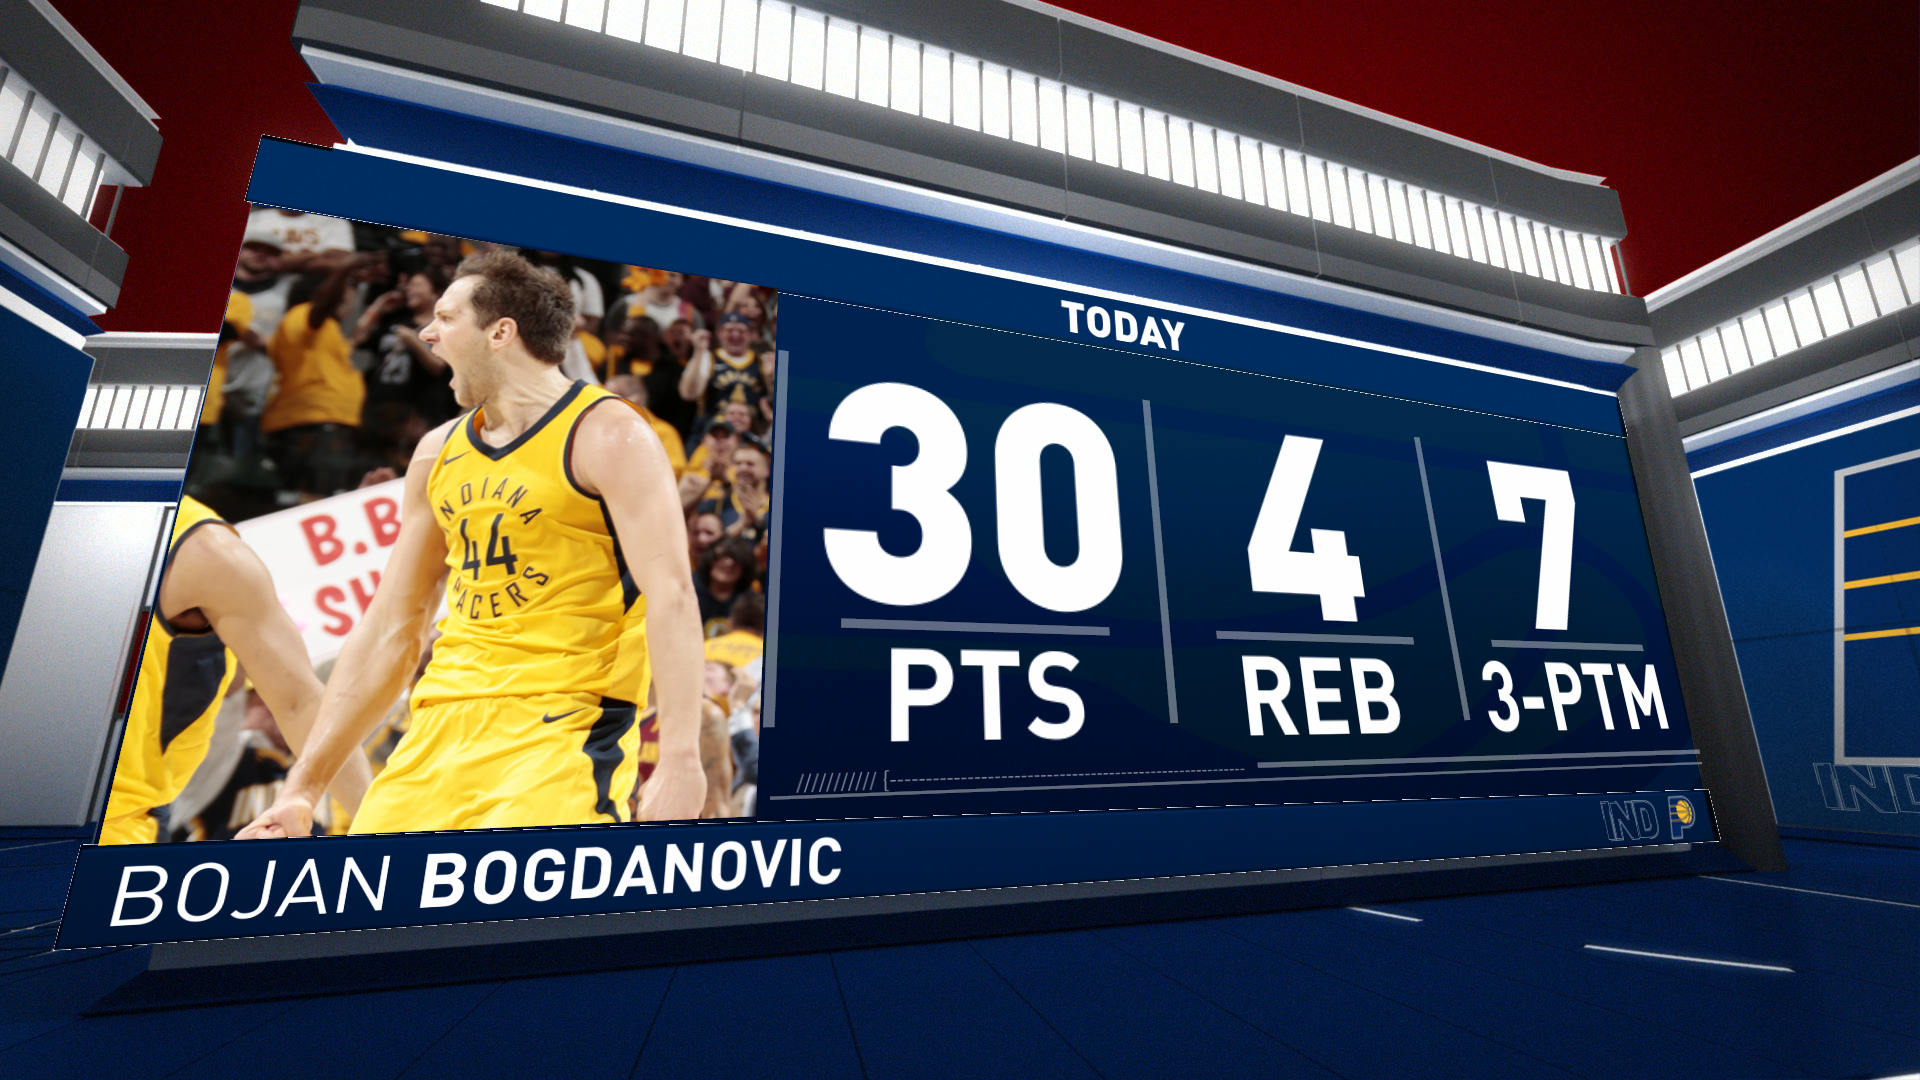 Bogdanovic leads Pacers with 30 points vs. Cavs